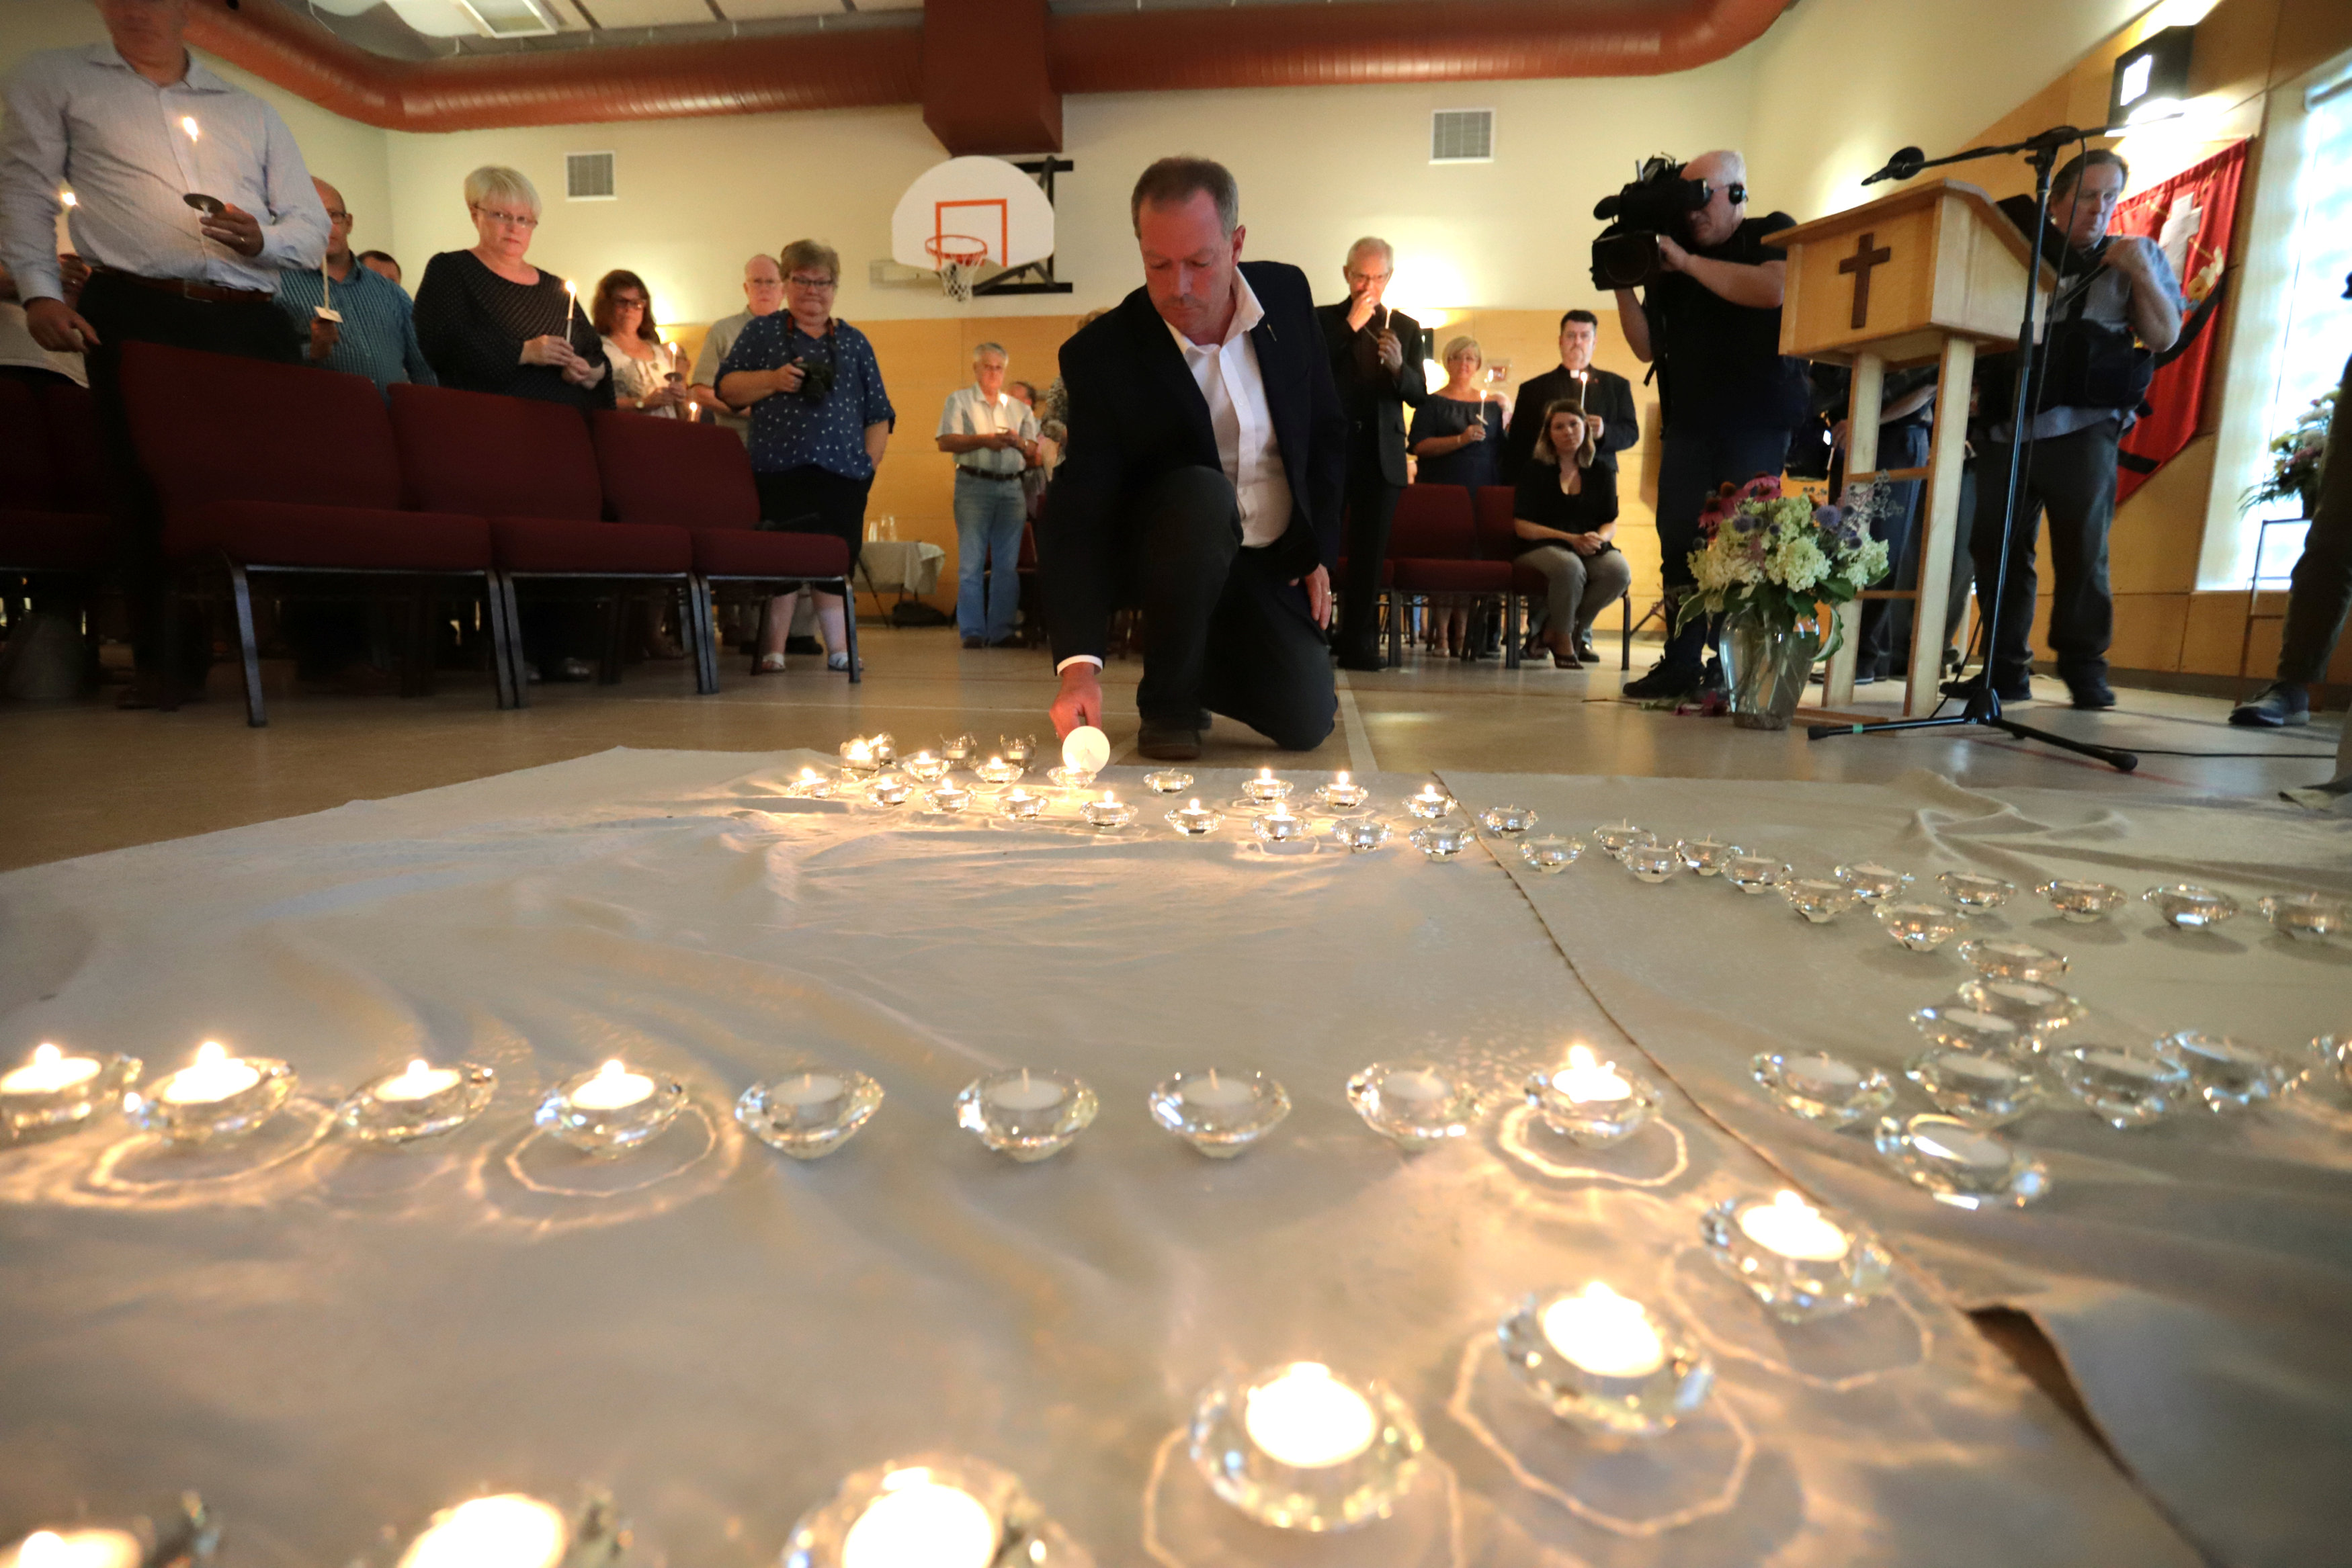 Participants light candles for the fallen at the St. John the Evangelist Anglican Church in Fredericton